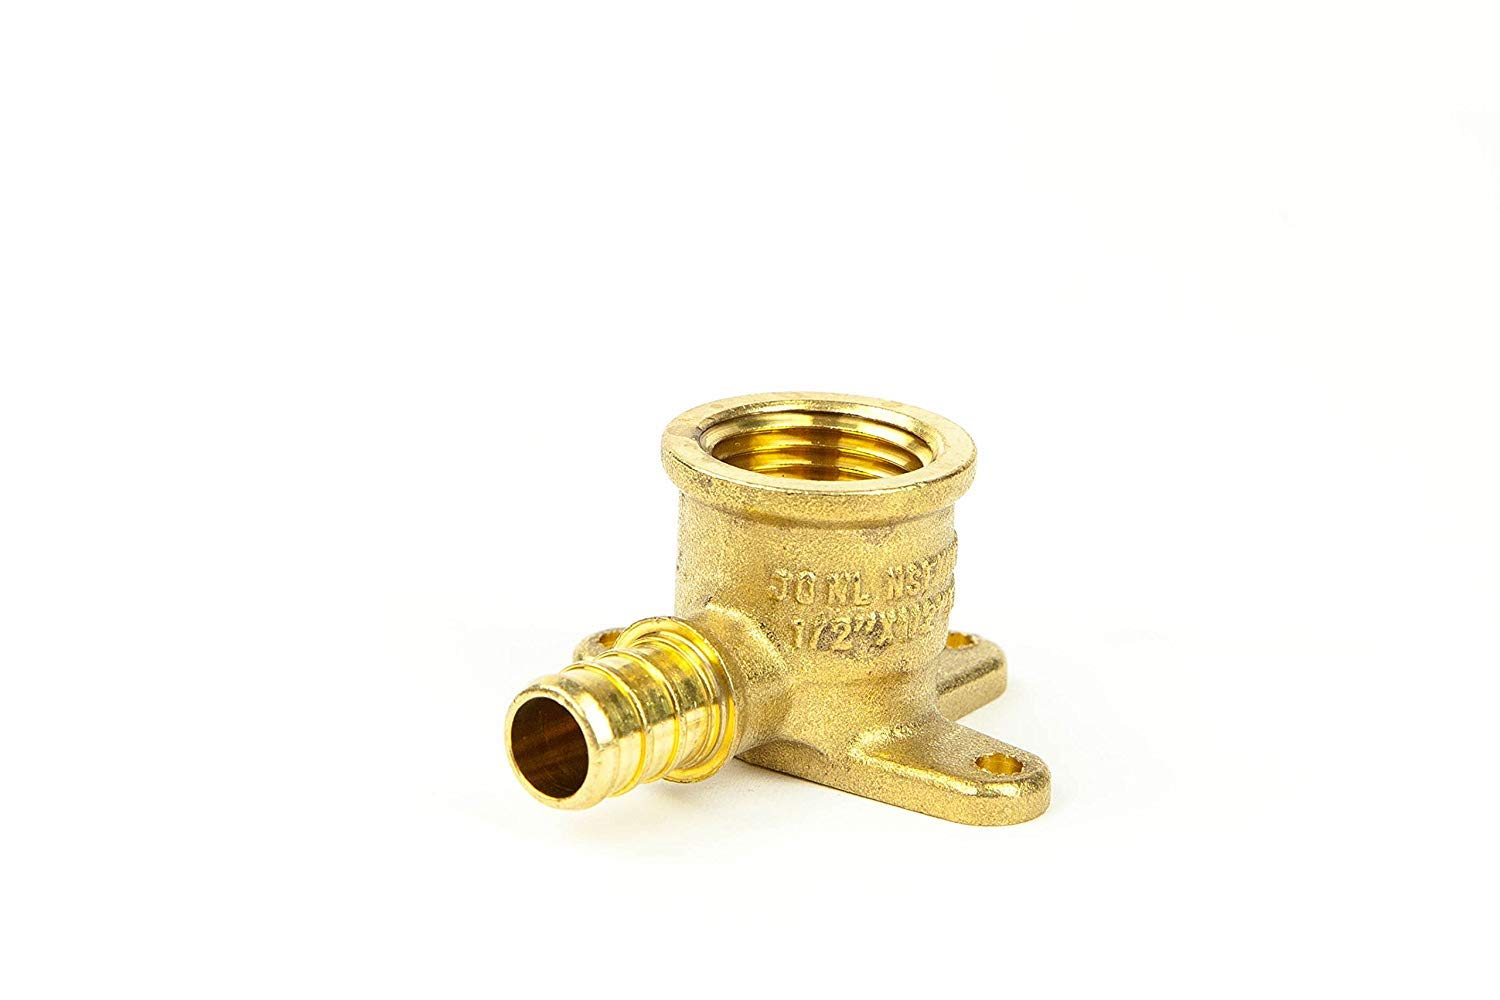 1/2'' PEX Female Threaded Drop Ear Elbow, Brass Crimp Fitting - Pack of 25 by CMI Inc.